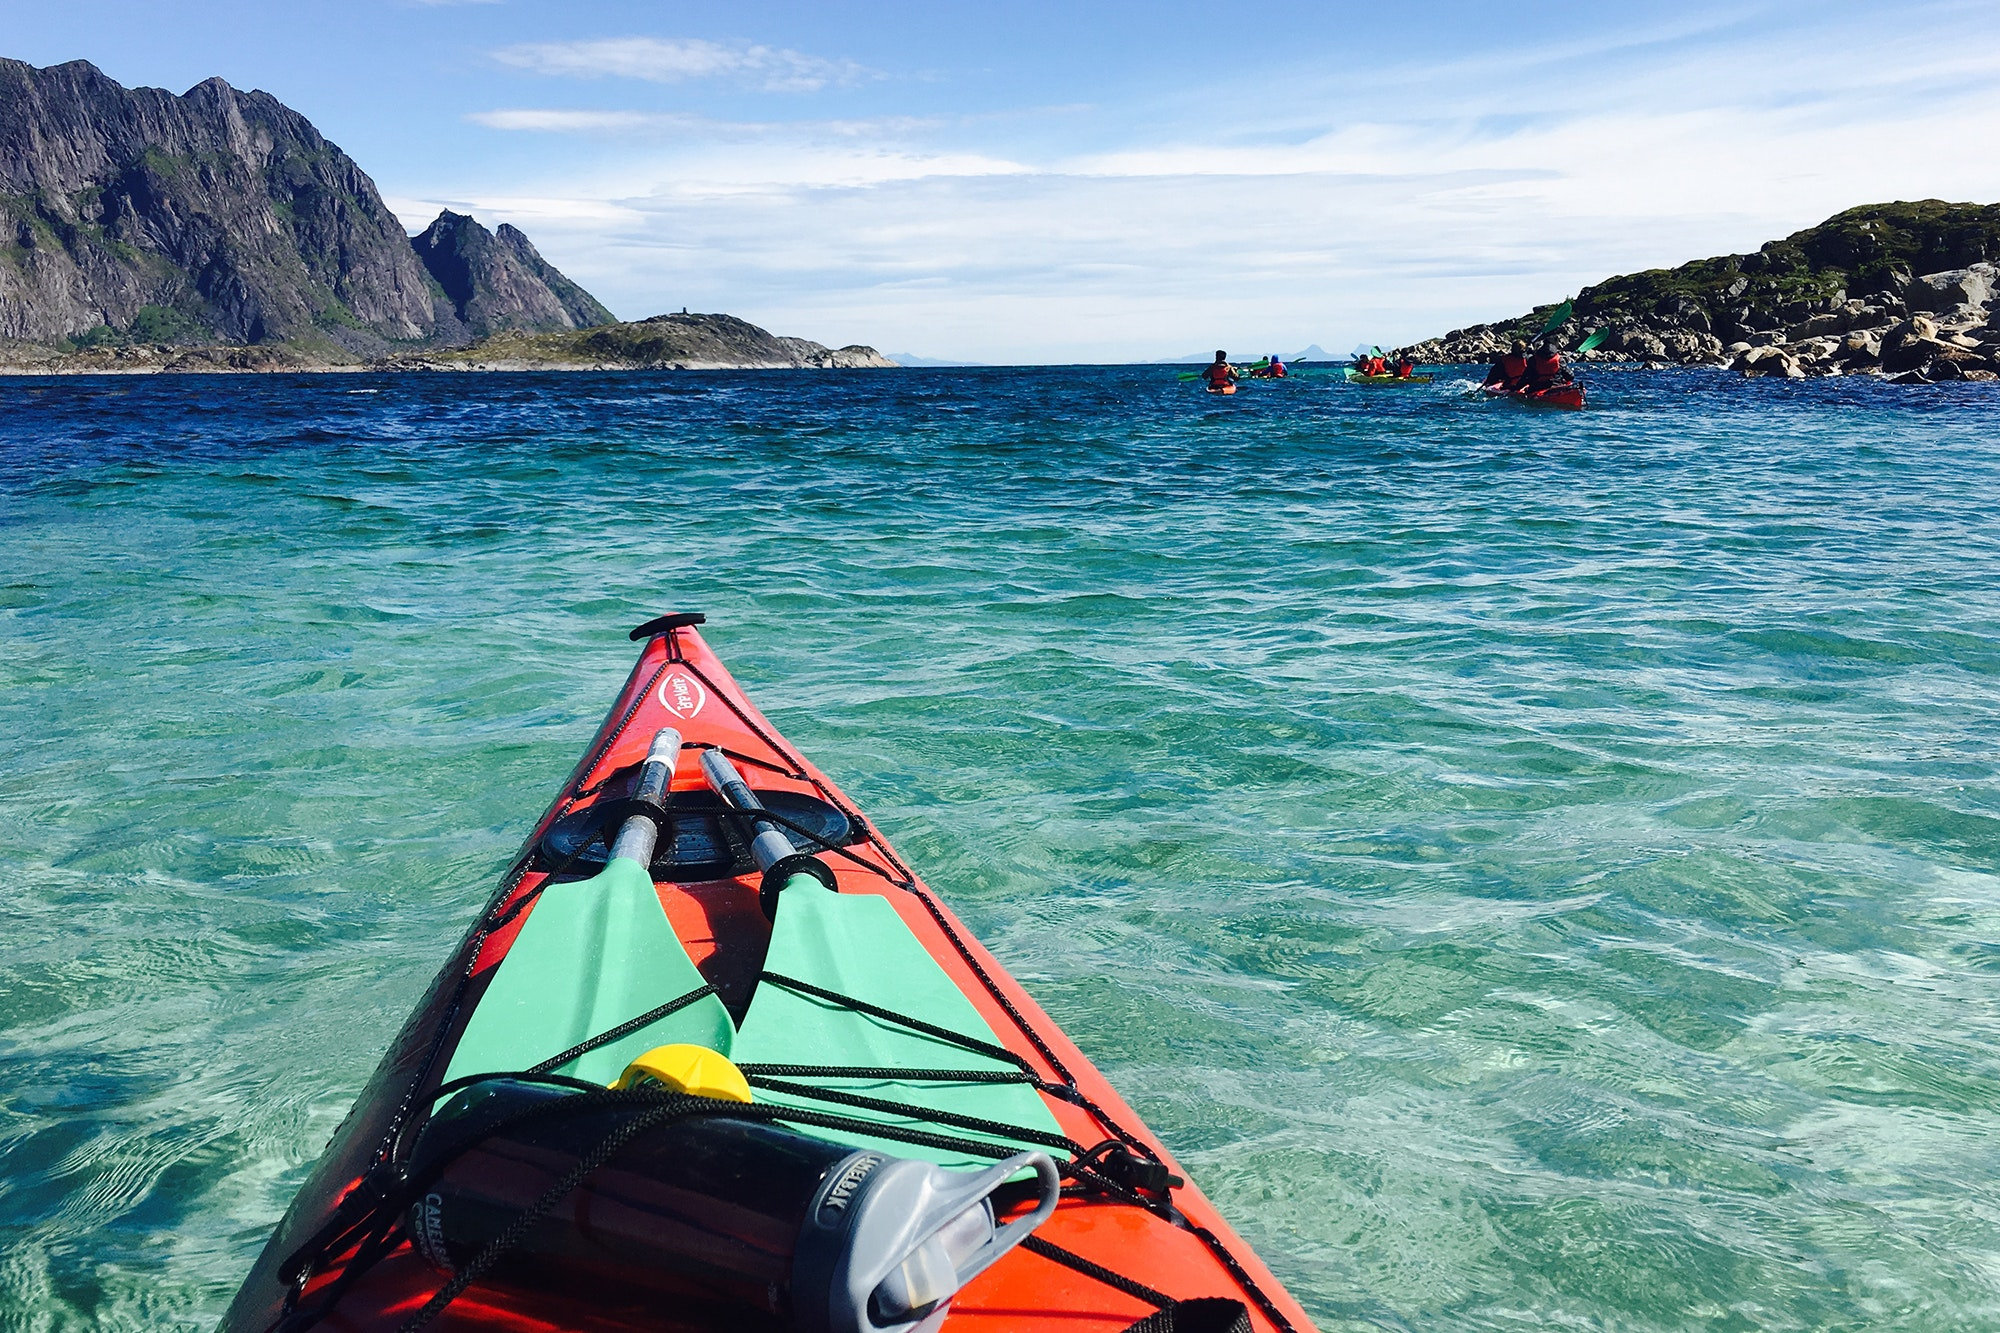 Kayaking is included in the three-day glamping program.